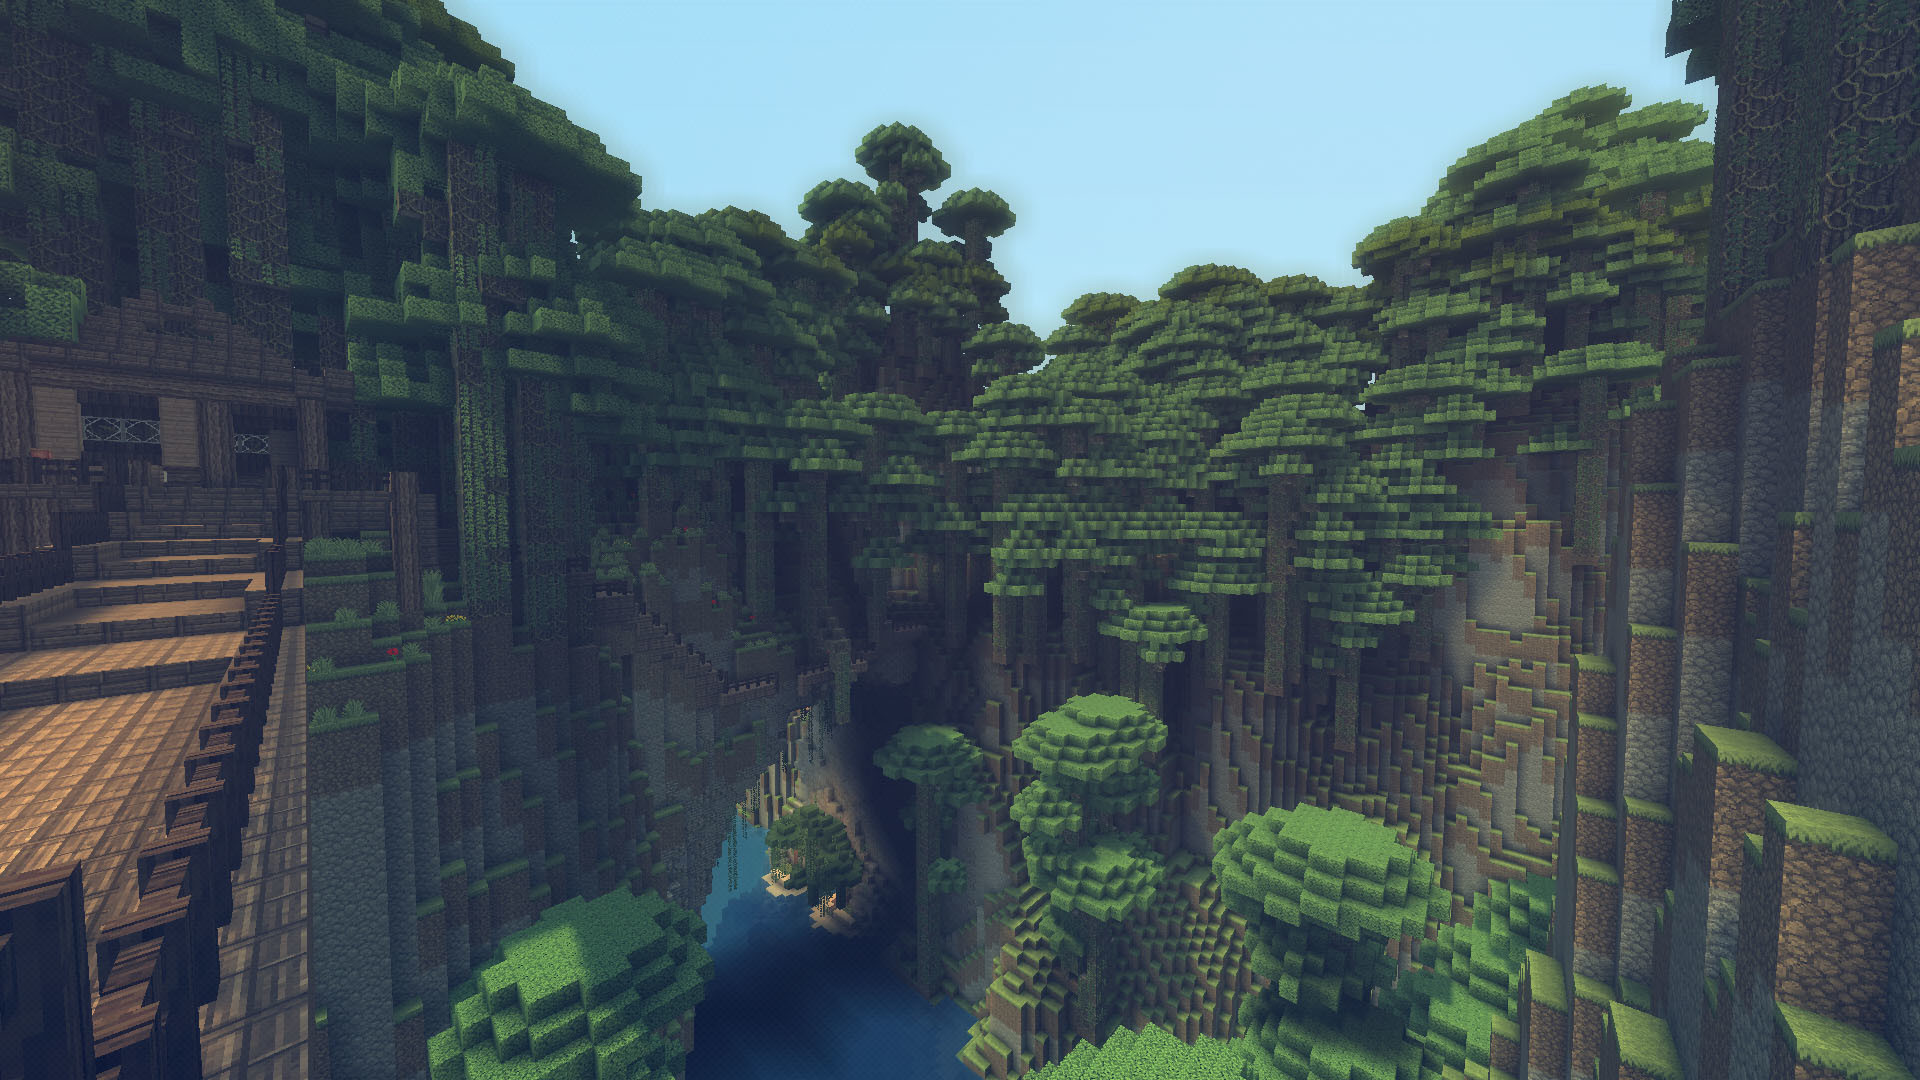 1920x1080 Games Backgrounds Minecraft Wallpapers by Nikolas Pasternak